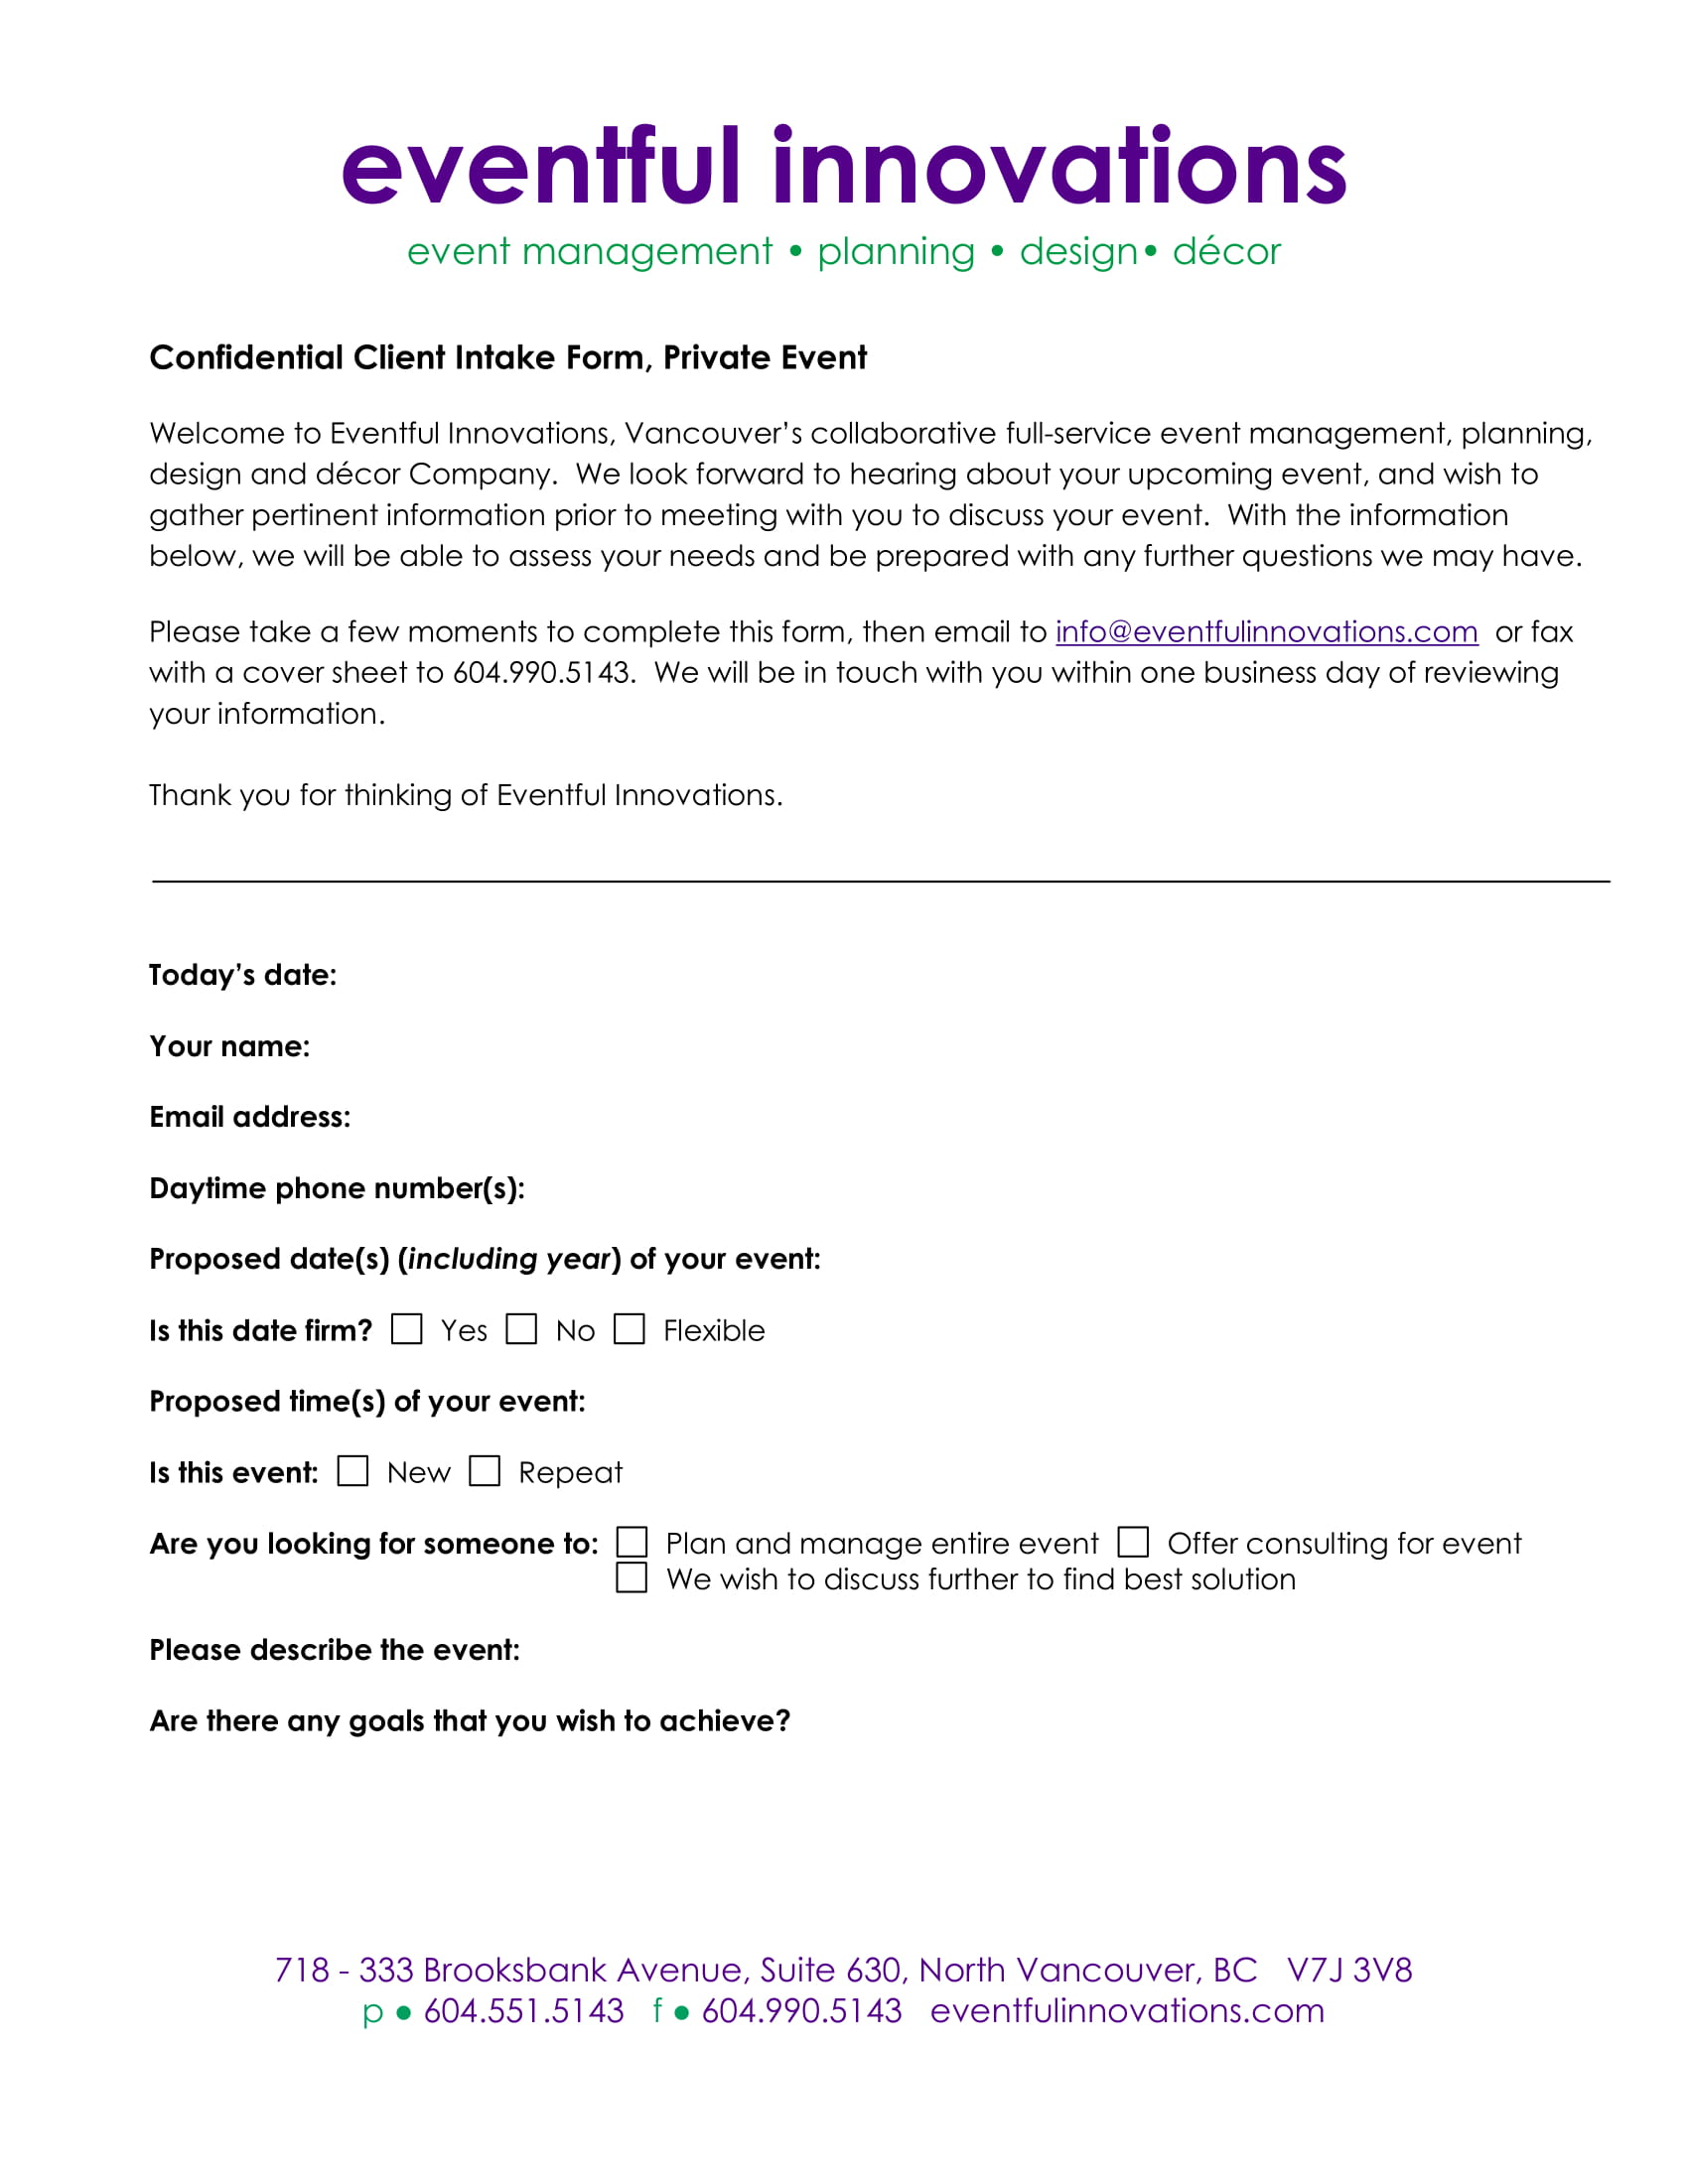 private event client intake form 1